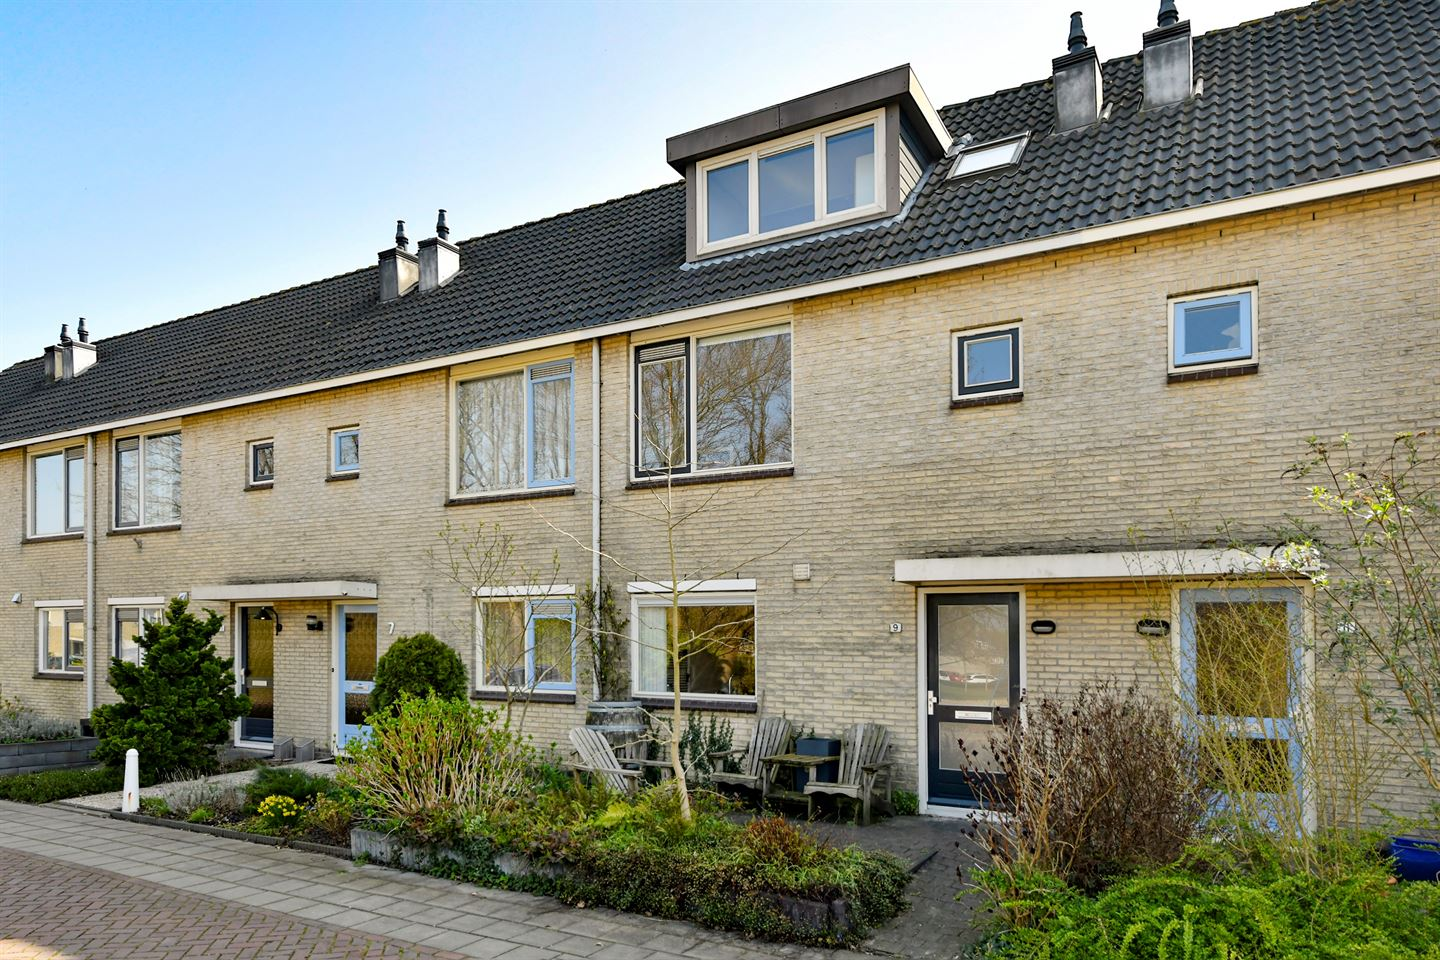 View photo 1 of De Eindhoeve 9